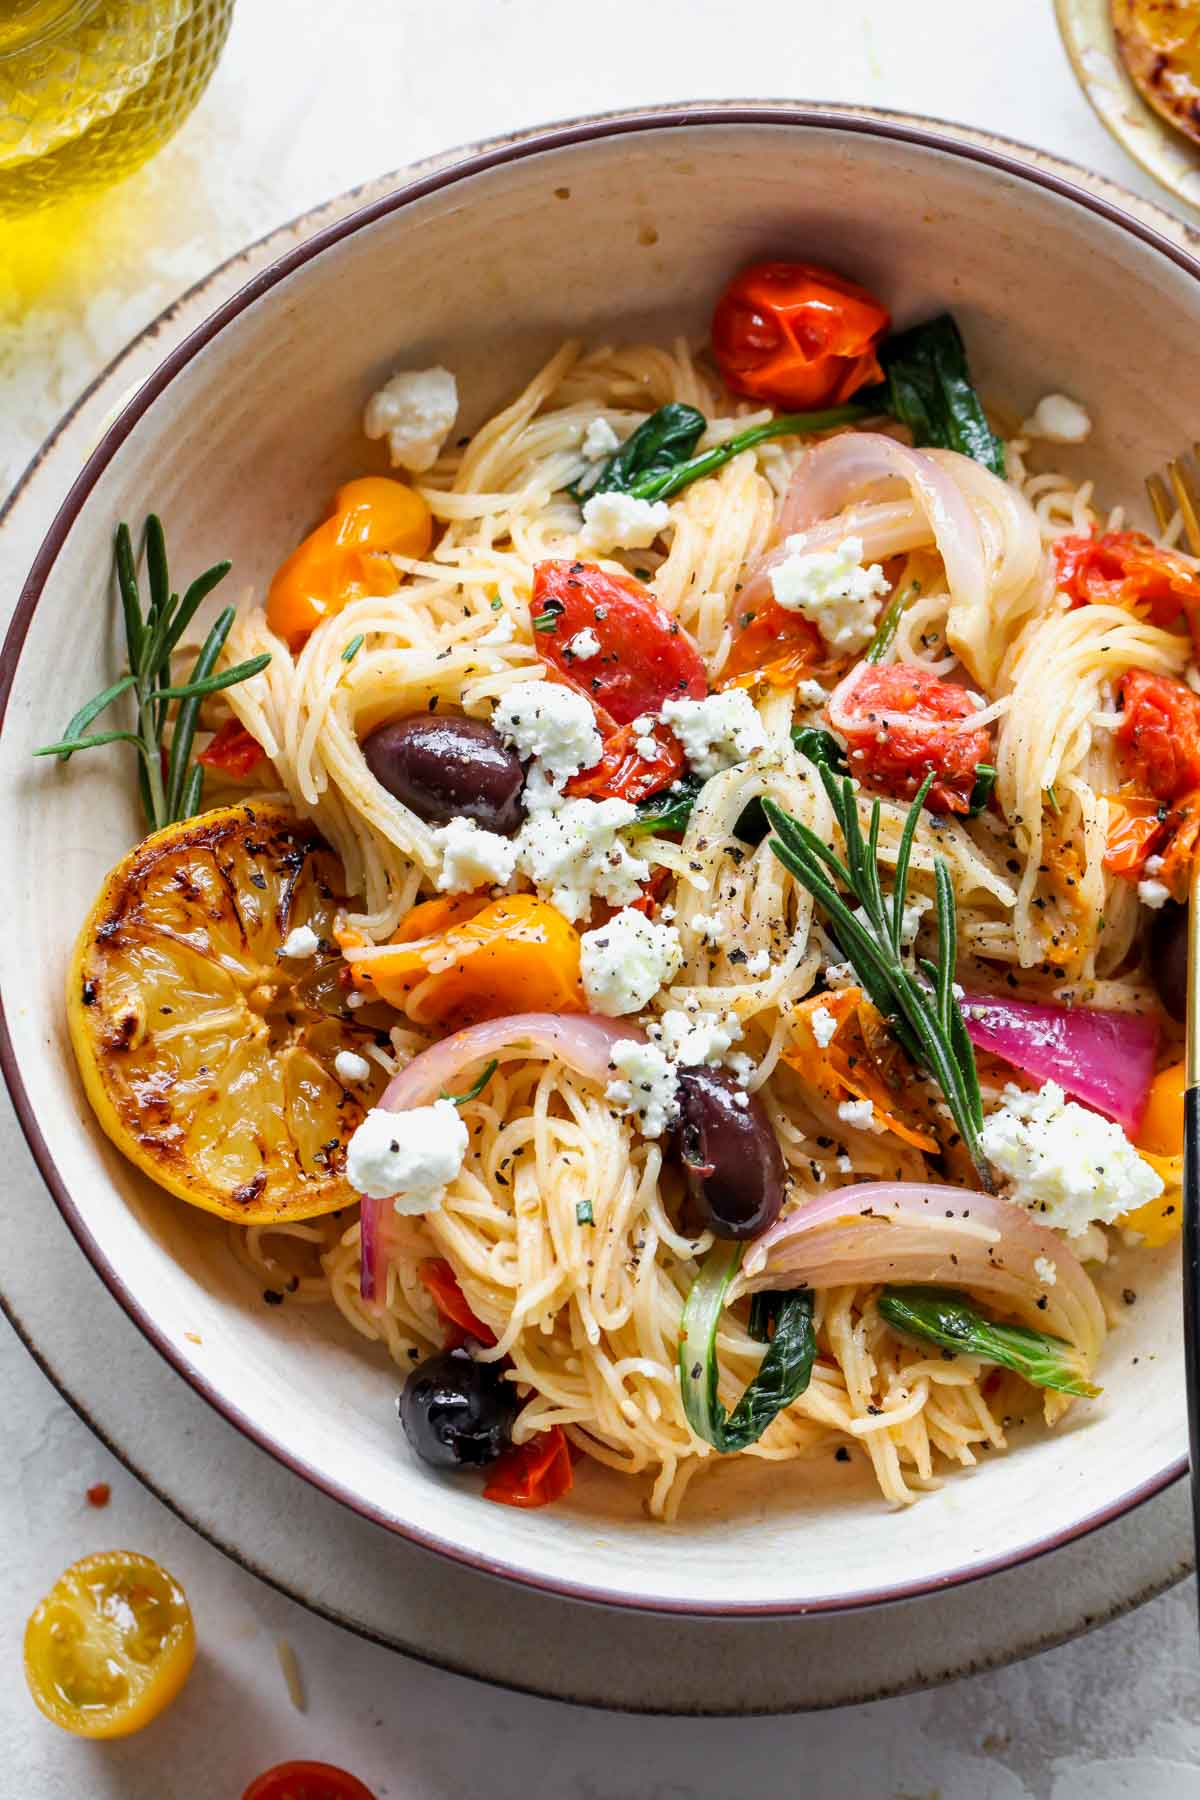 Angel hair spaghetti in a bowl with cherry tomatoes, rosemary, and olives